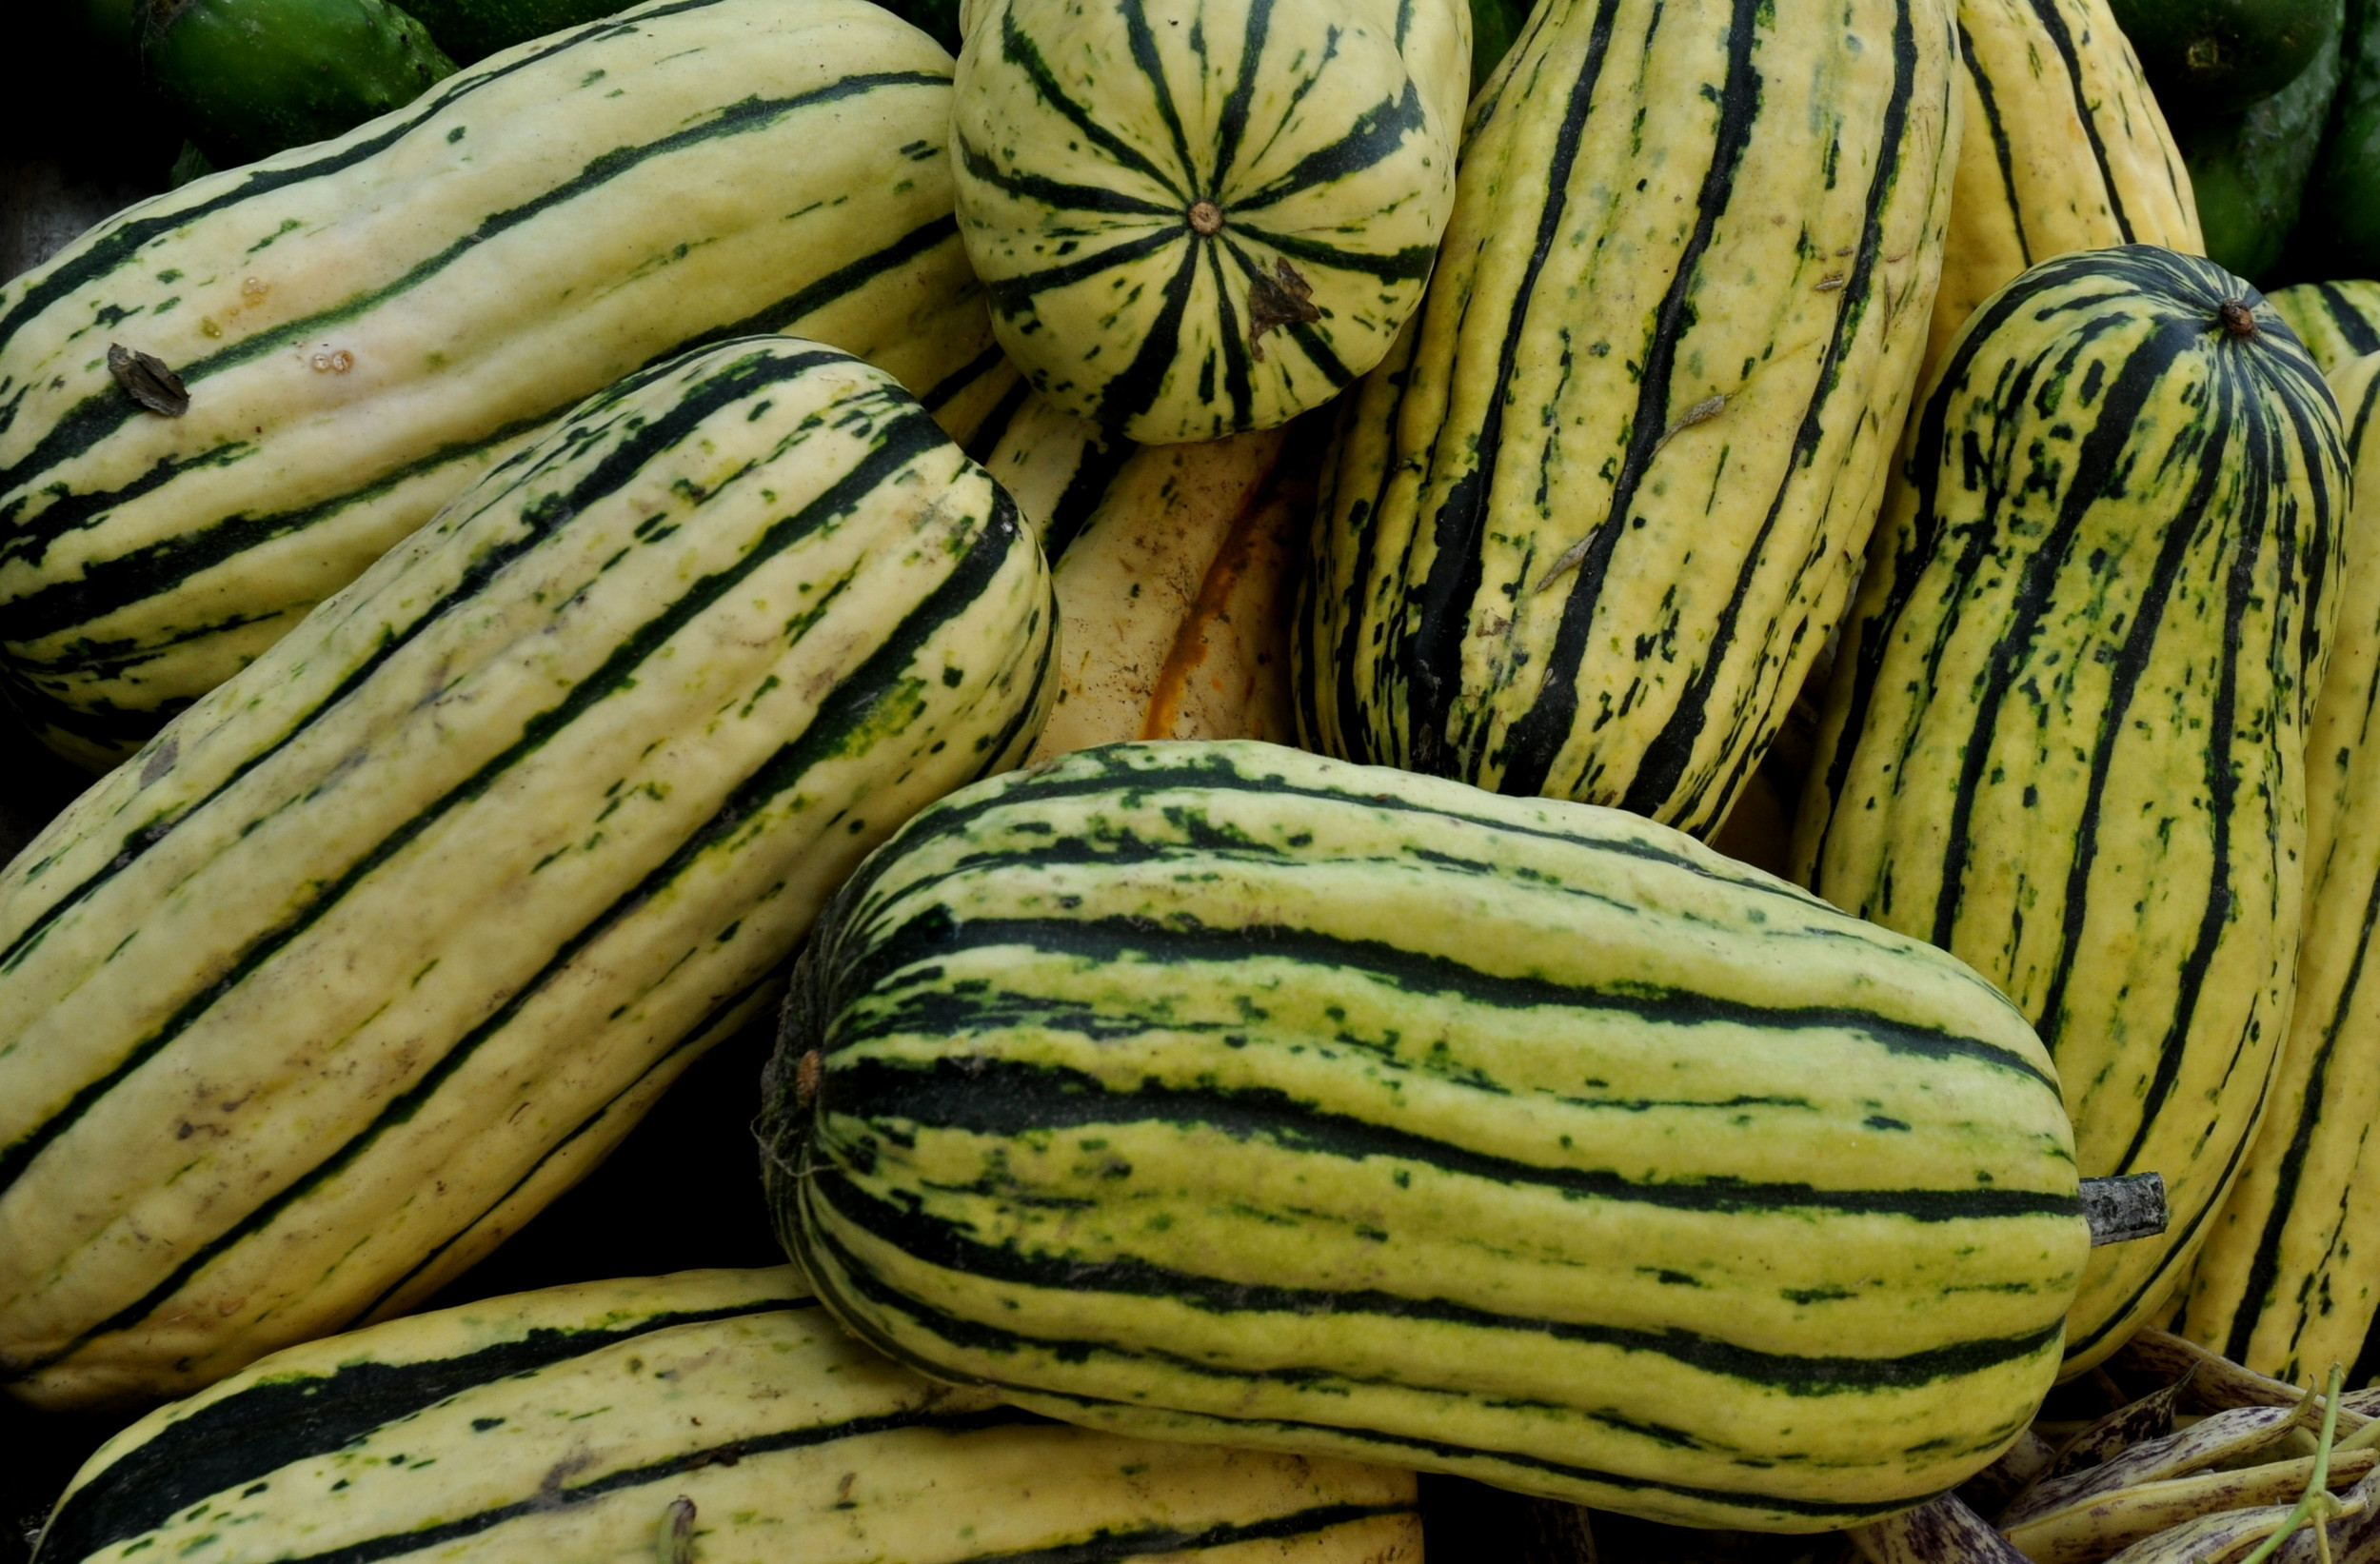 Delicata winter squash from Alm Hill Gardens. Photo copyright 2013 by Zachary D. Lyons.